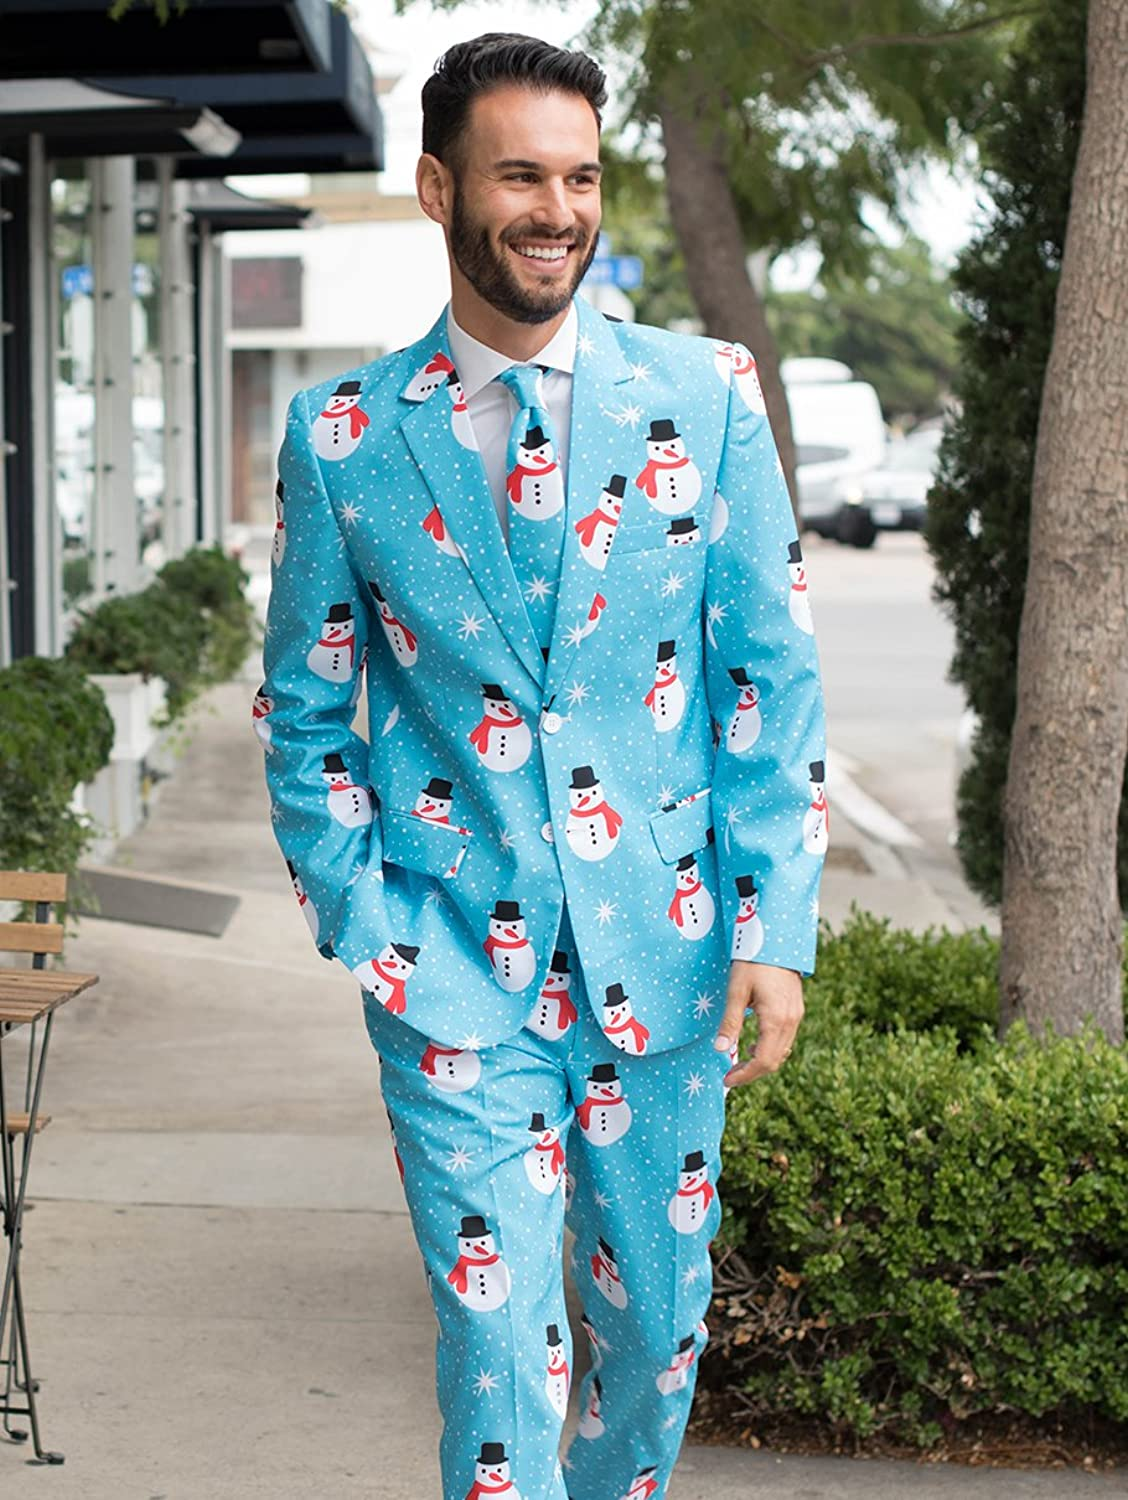 Outstanding Funny Wedding Suits Image - Wedding Dress - googeb.com